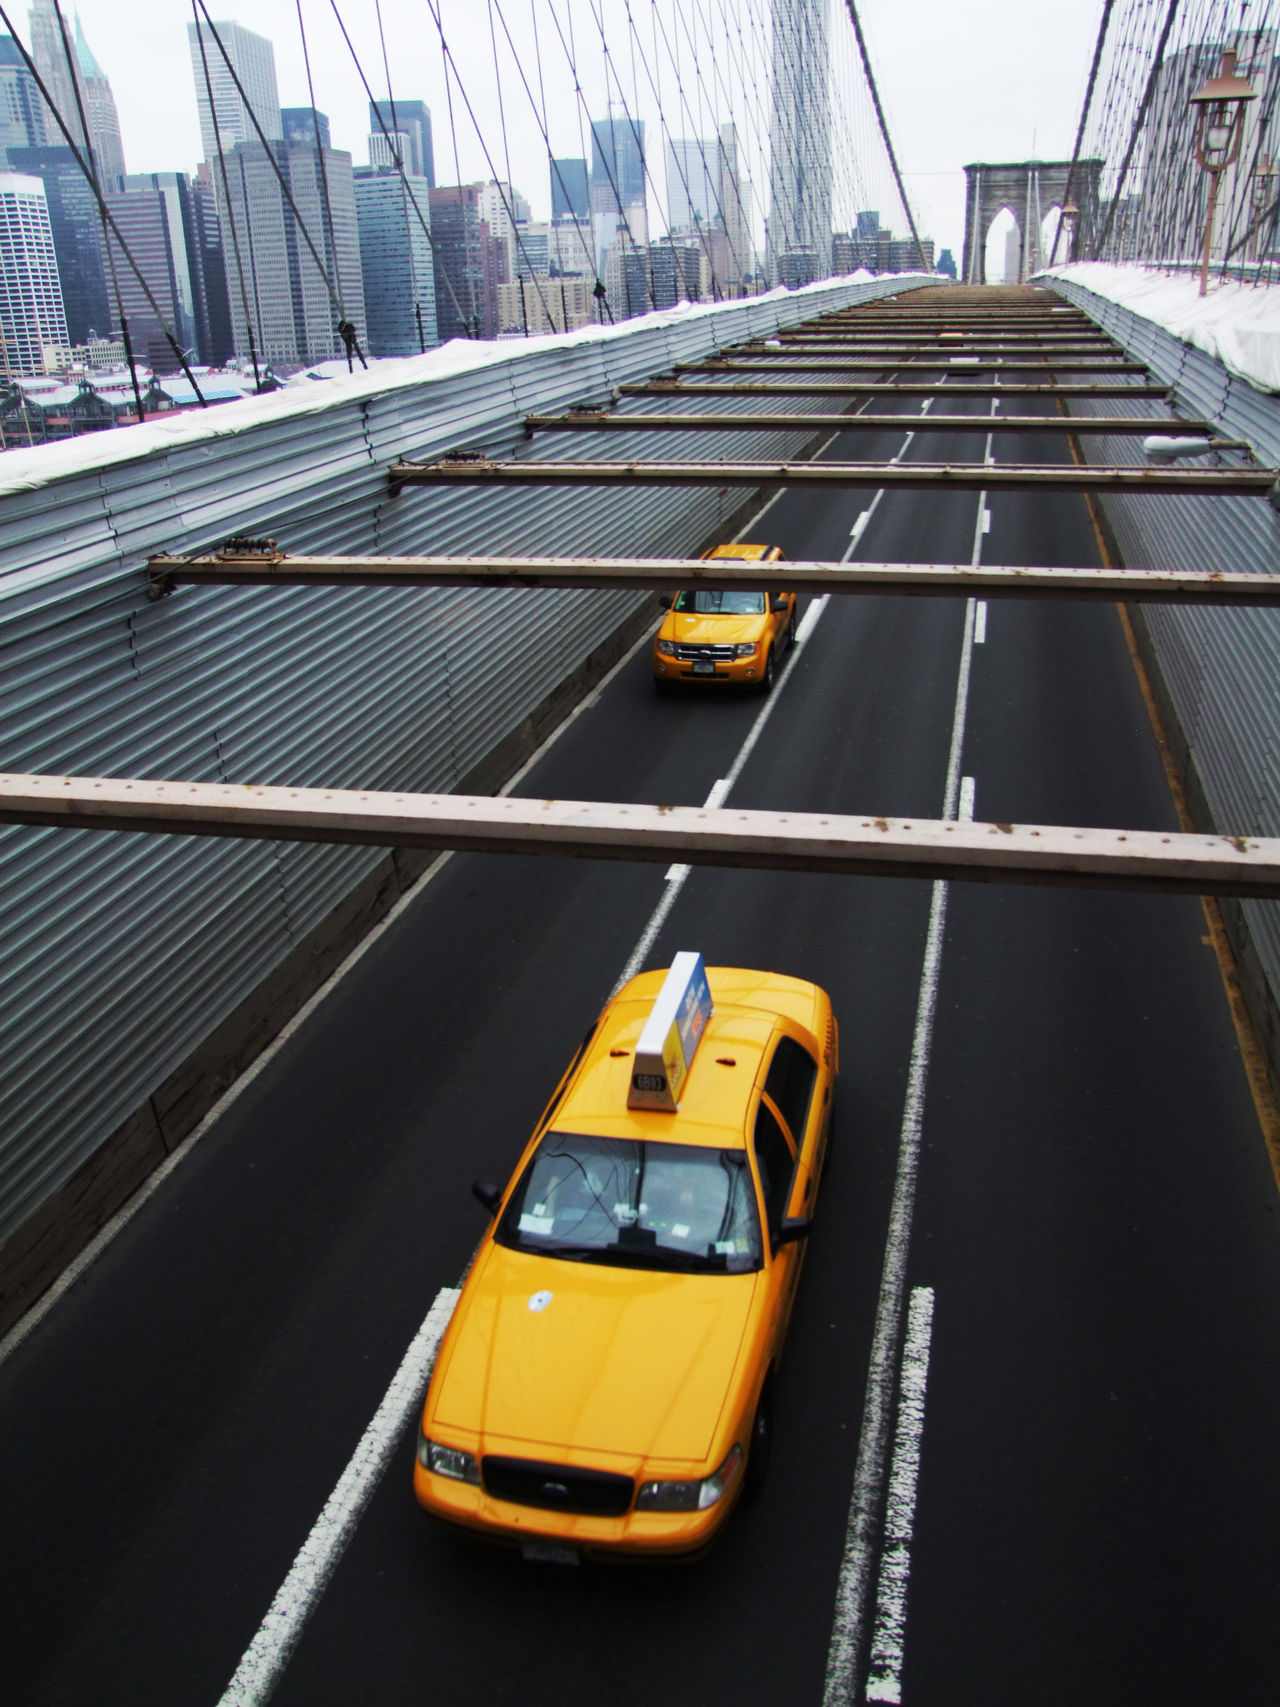 NYC classics Architecture Bridge Brooklyn Brooklyn Bridge / New York Building Exterior Built Structure Car City Day High Angle View Historical Building Manhattan New York City No People NYC Outdoors Skyline Skyscraper Street Suspension Bridge Taxi Transportation USA Yellow Yellow Taxi